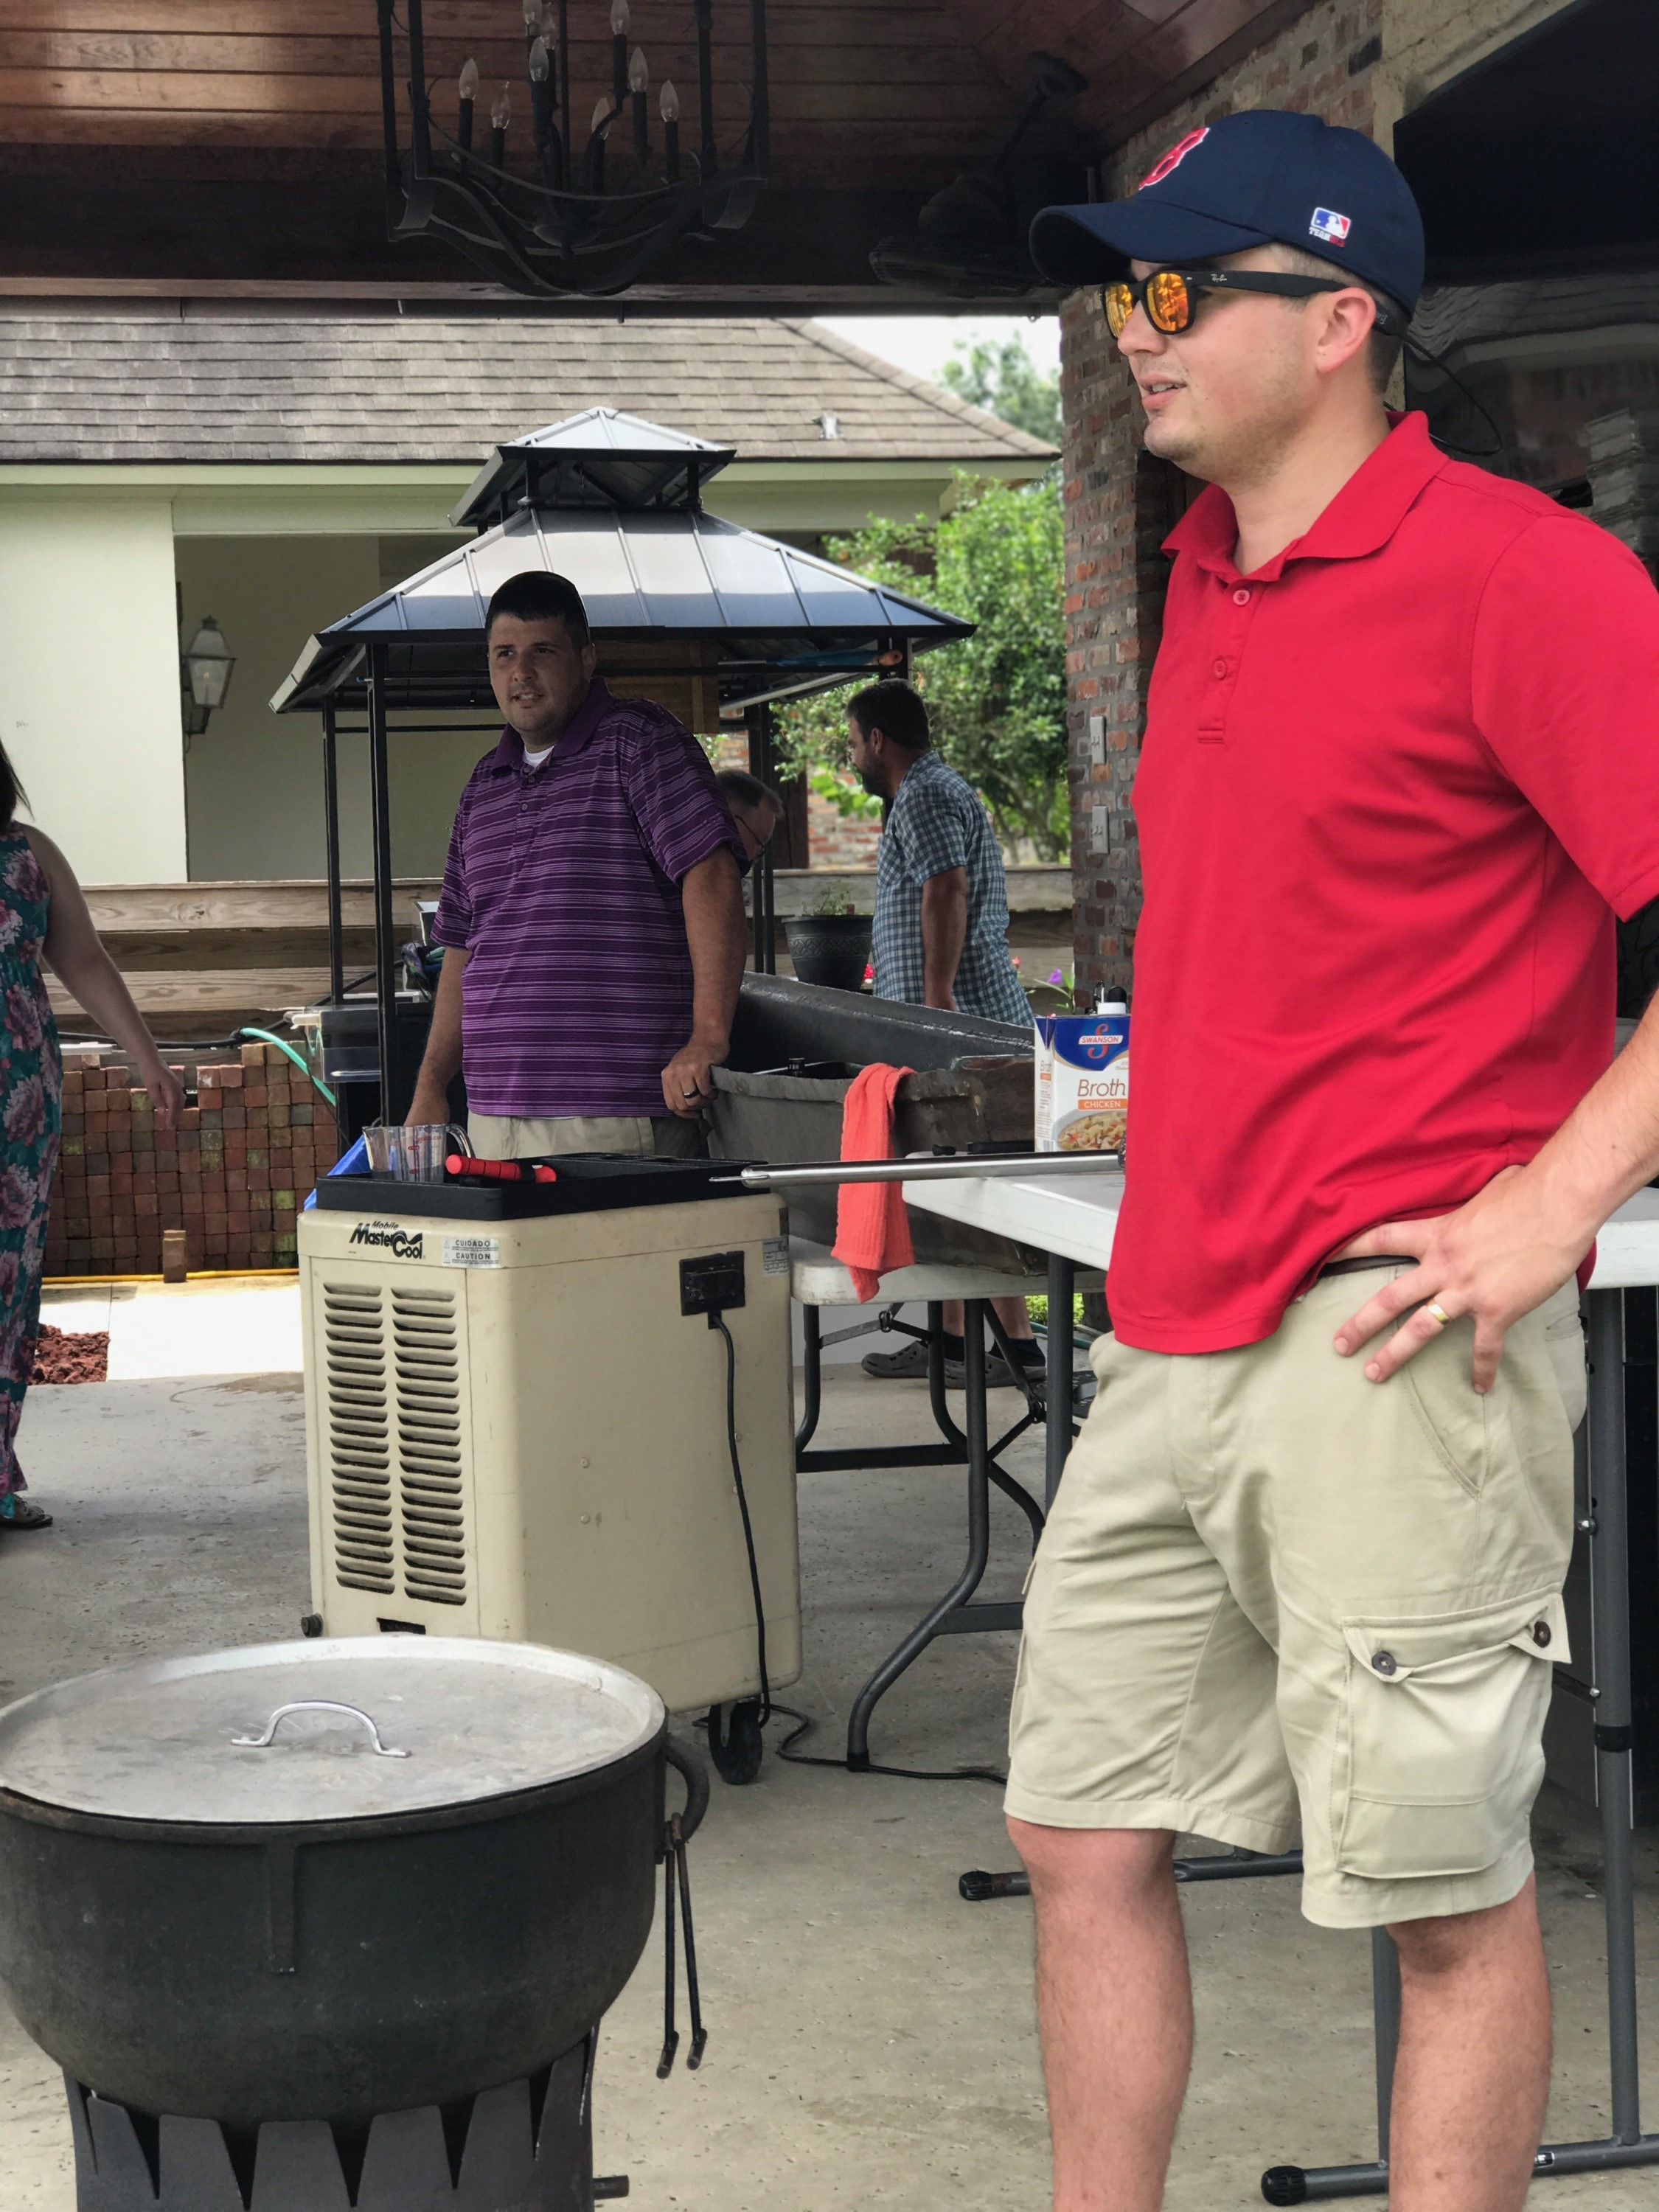 ABC's 13th Annual Crawfish Boil